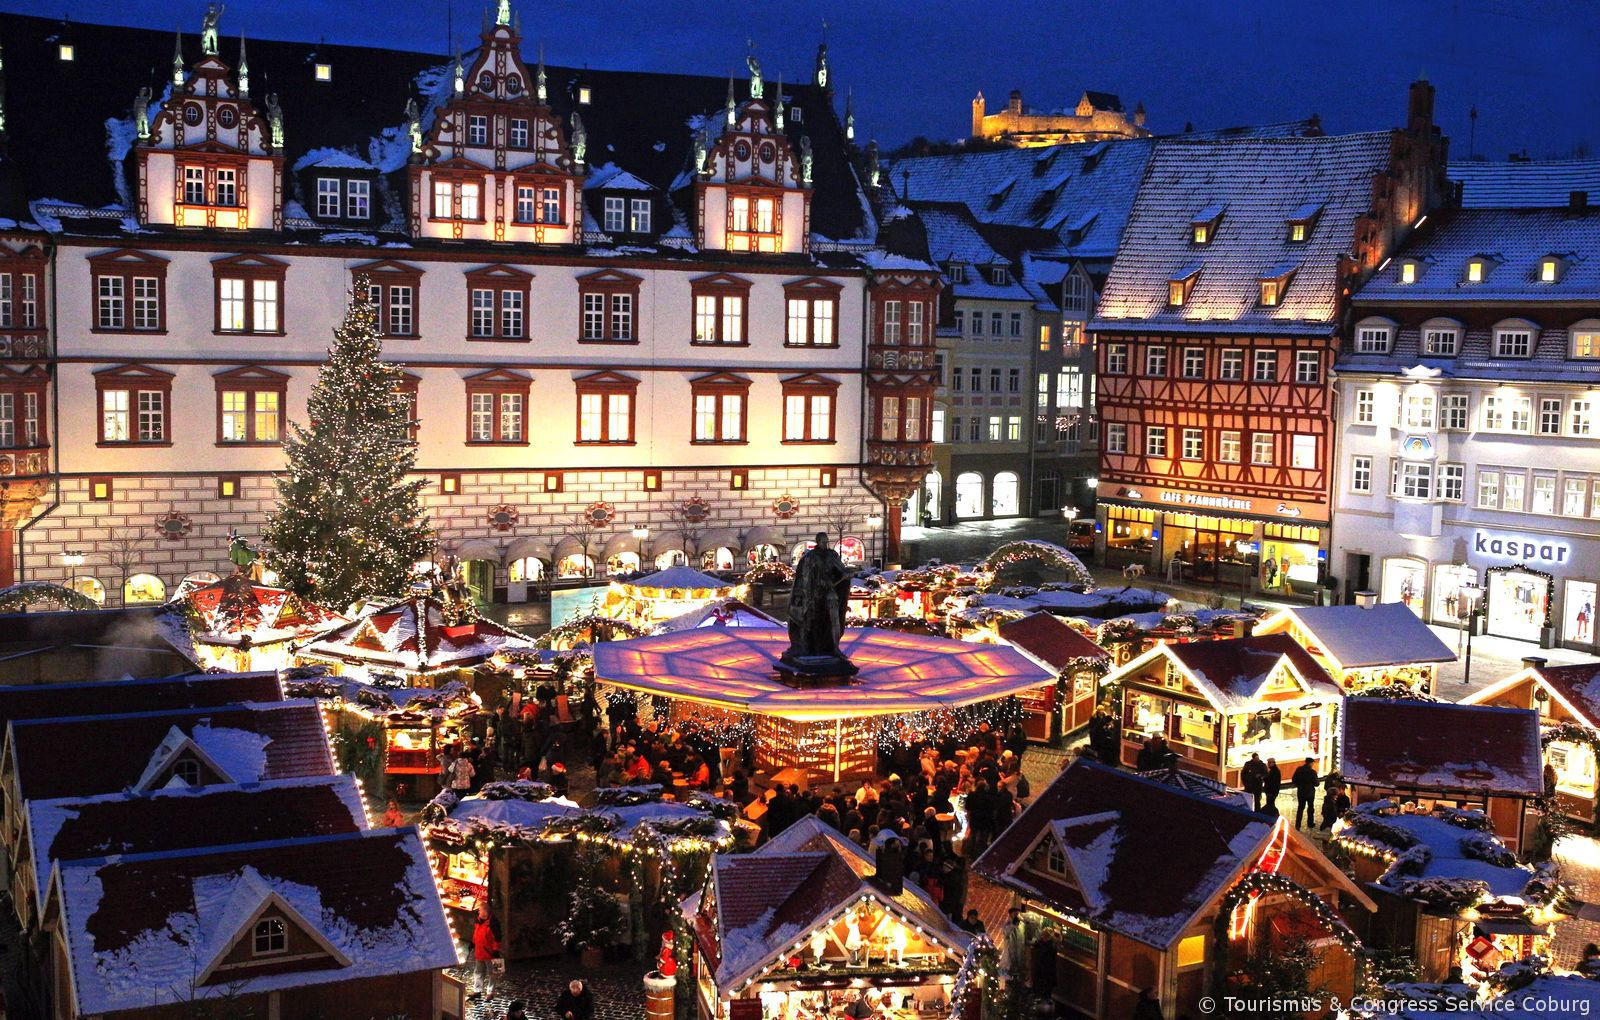 Christmas Village In Germany.The Romantic Christmas Village Of Coburg